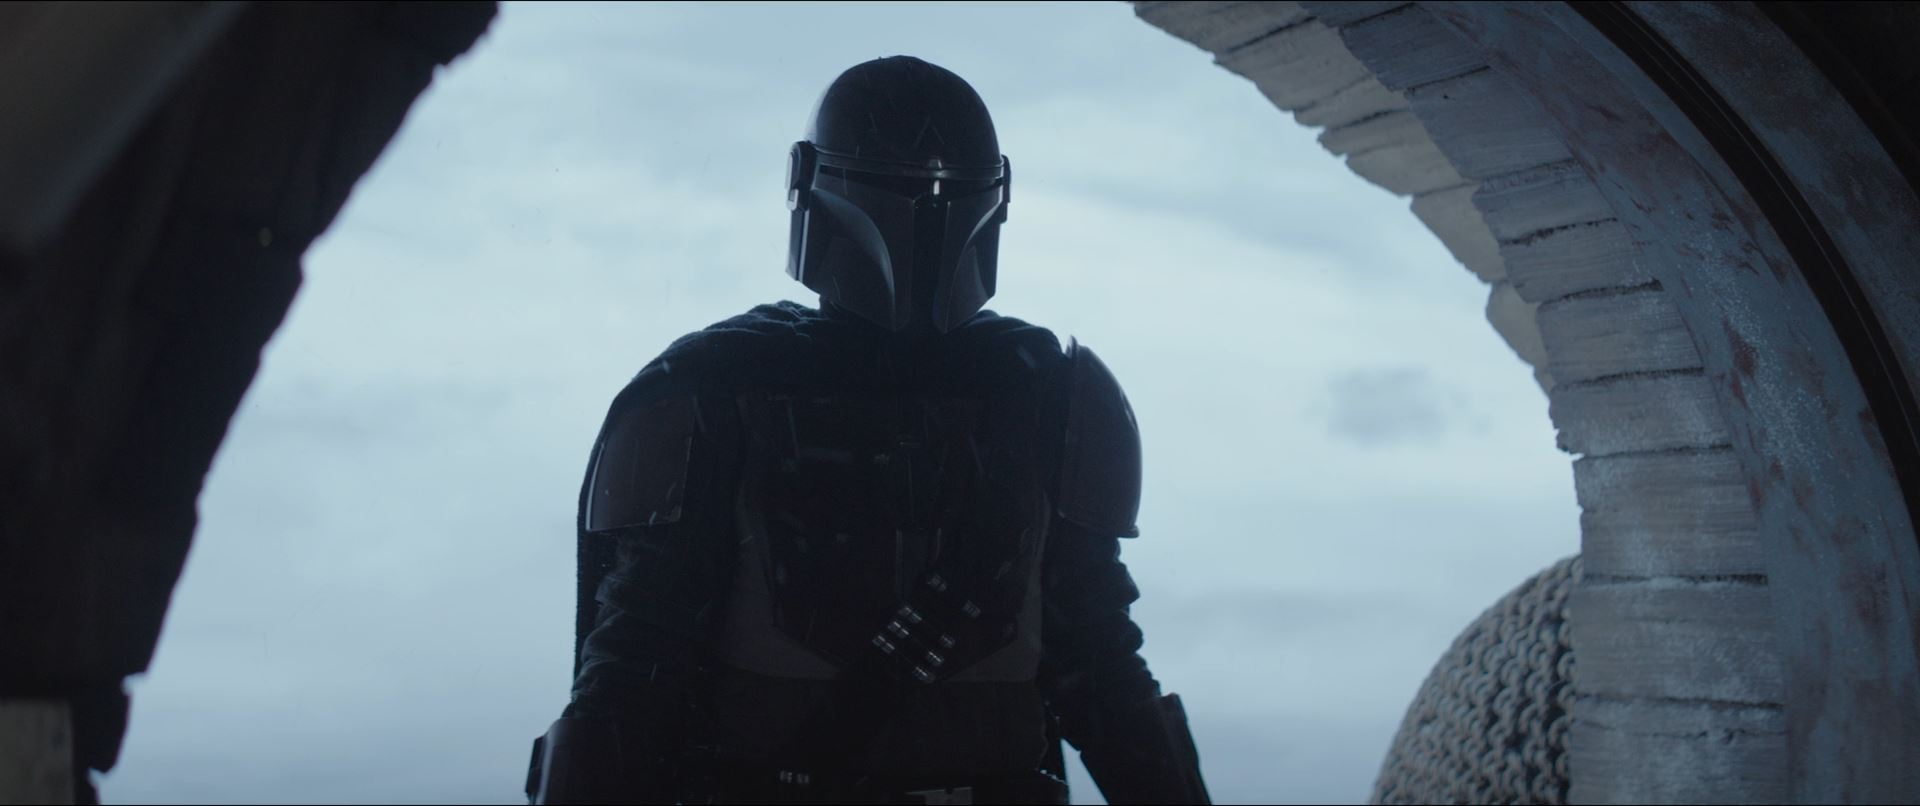 The Mandalorian - Pedro Pascal as the titular character